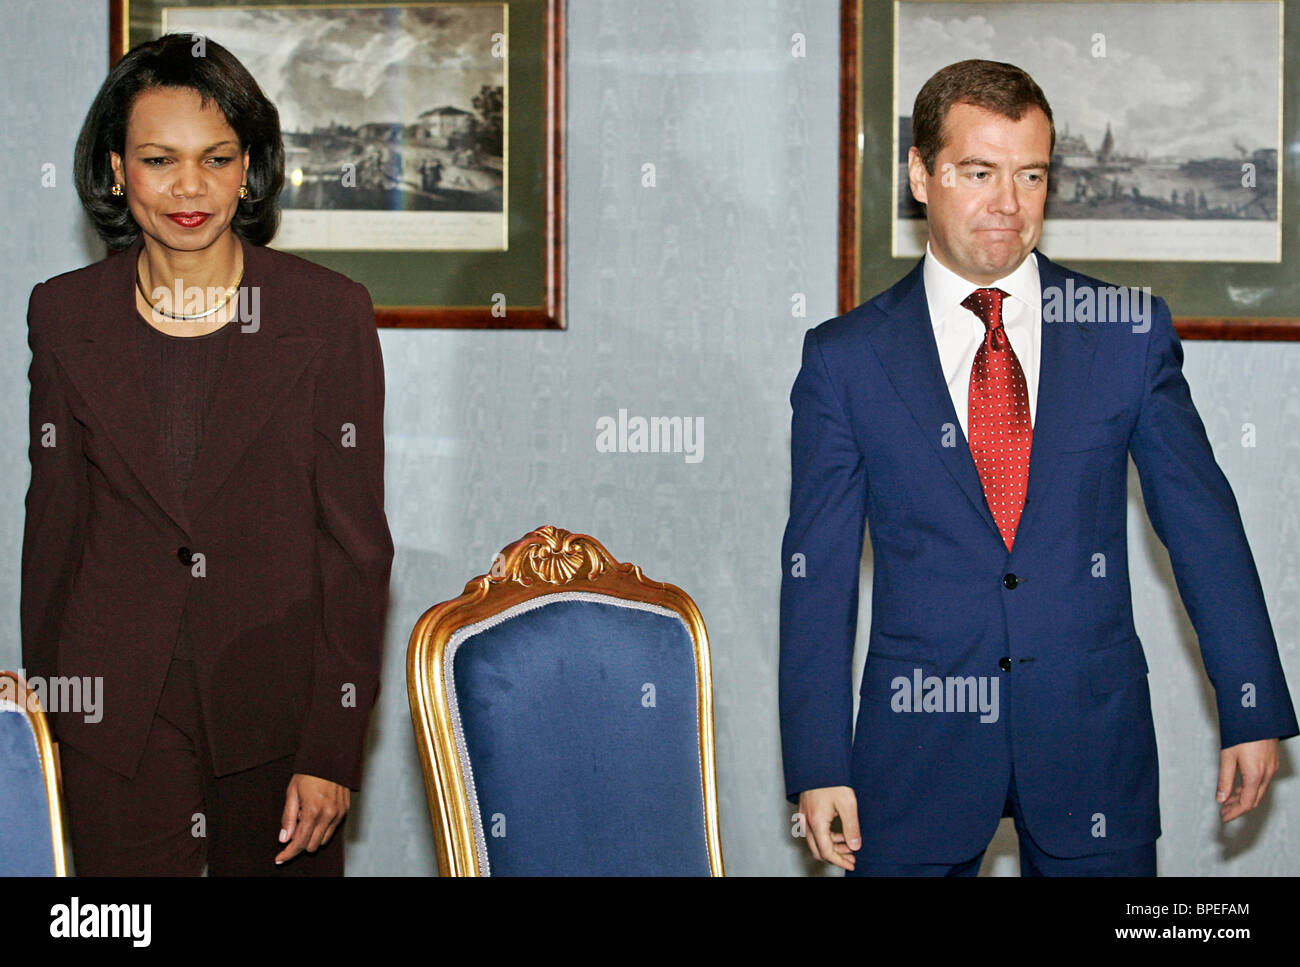 Dmitry Medvedev meets with Condoleezza Rice and Robert Gates - Stock Image